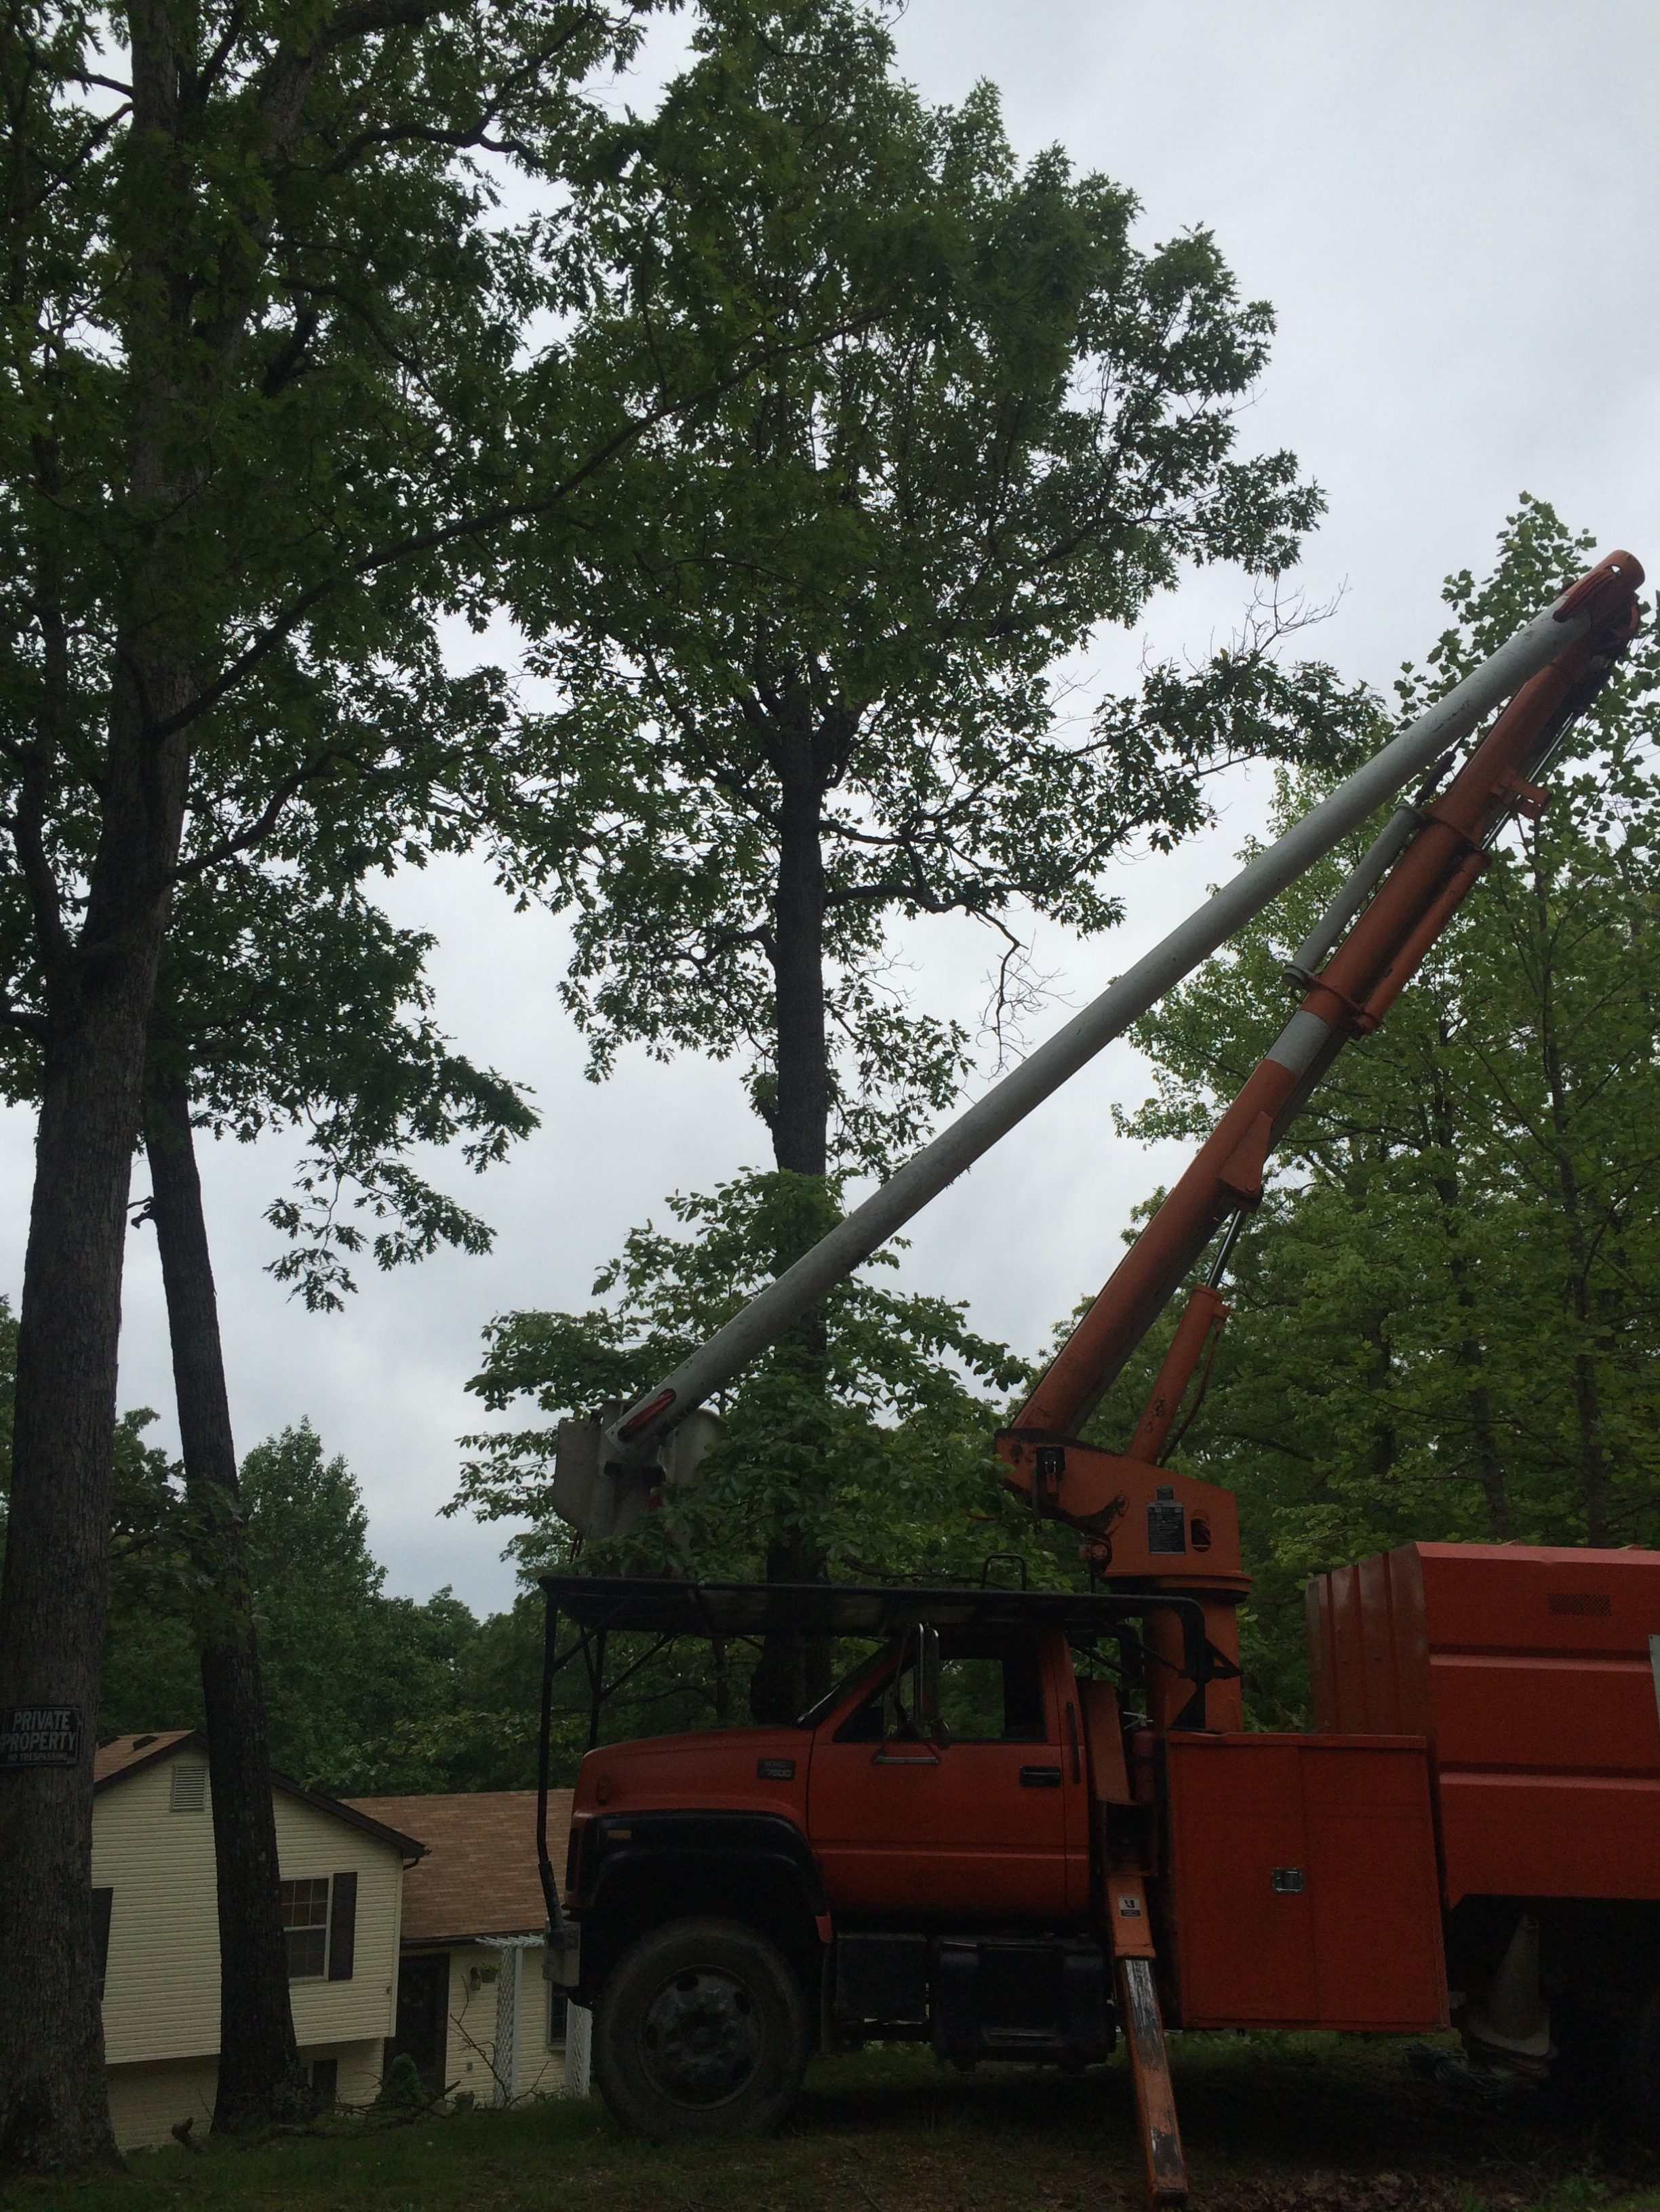 Top arborist in louisville